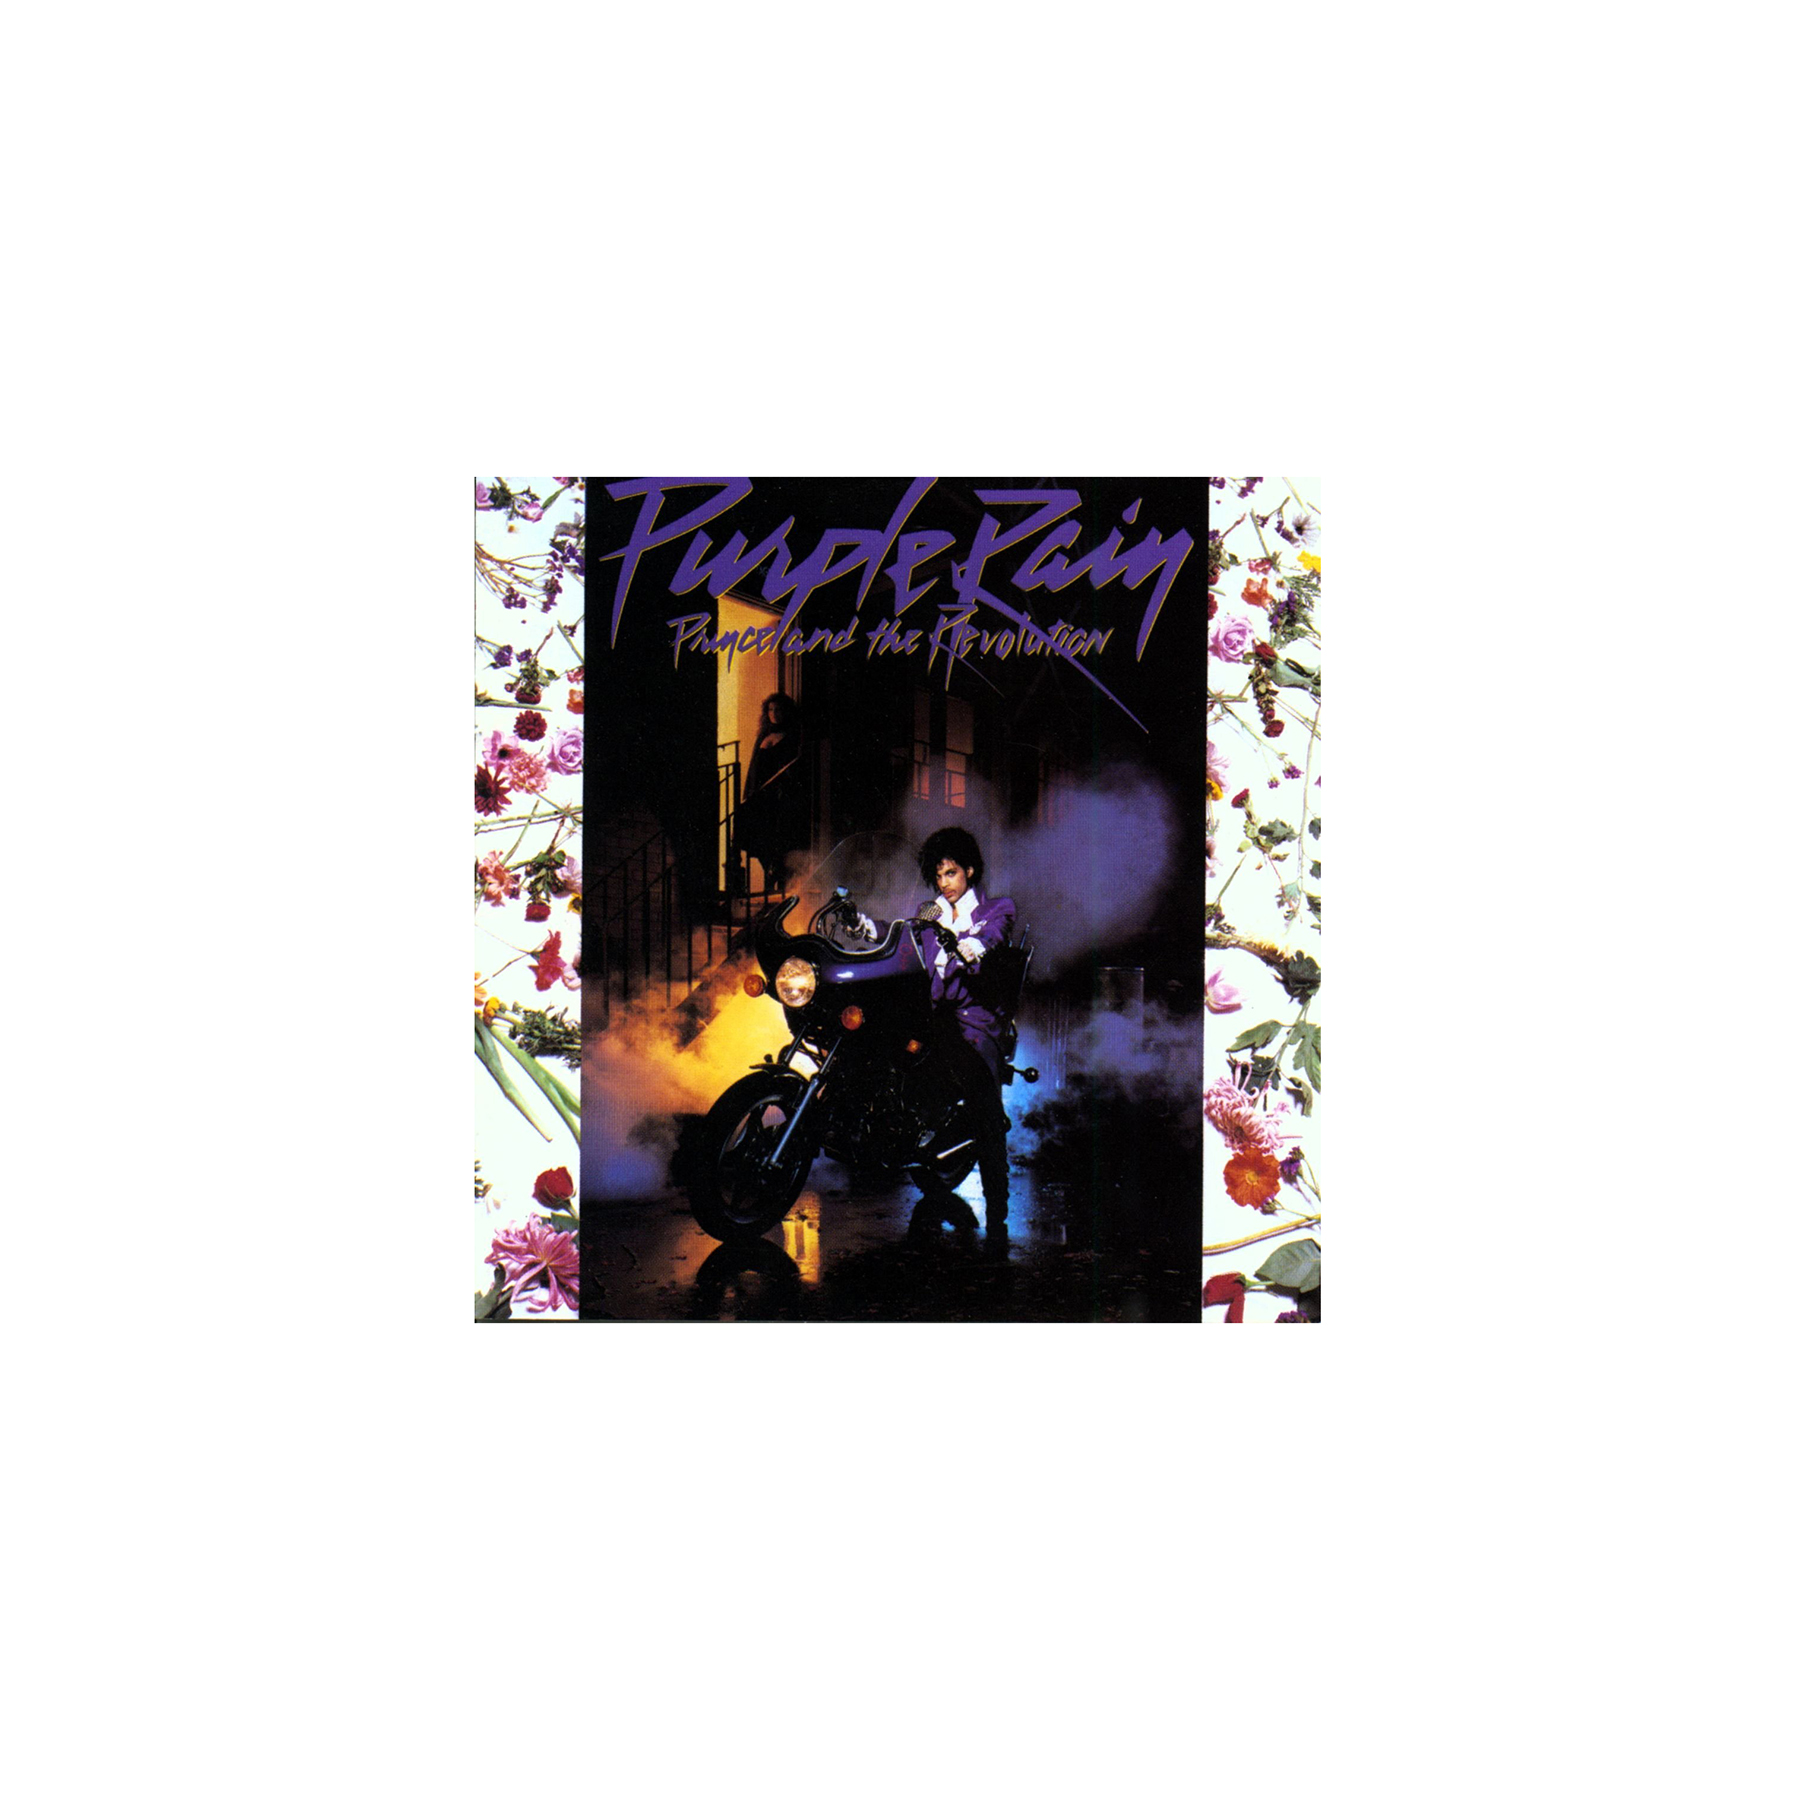 Valentine Gifts for Him: Prince and the Revolution Purple Rain LP